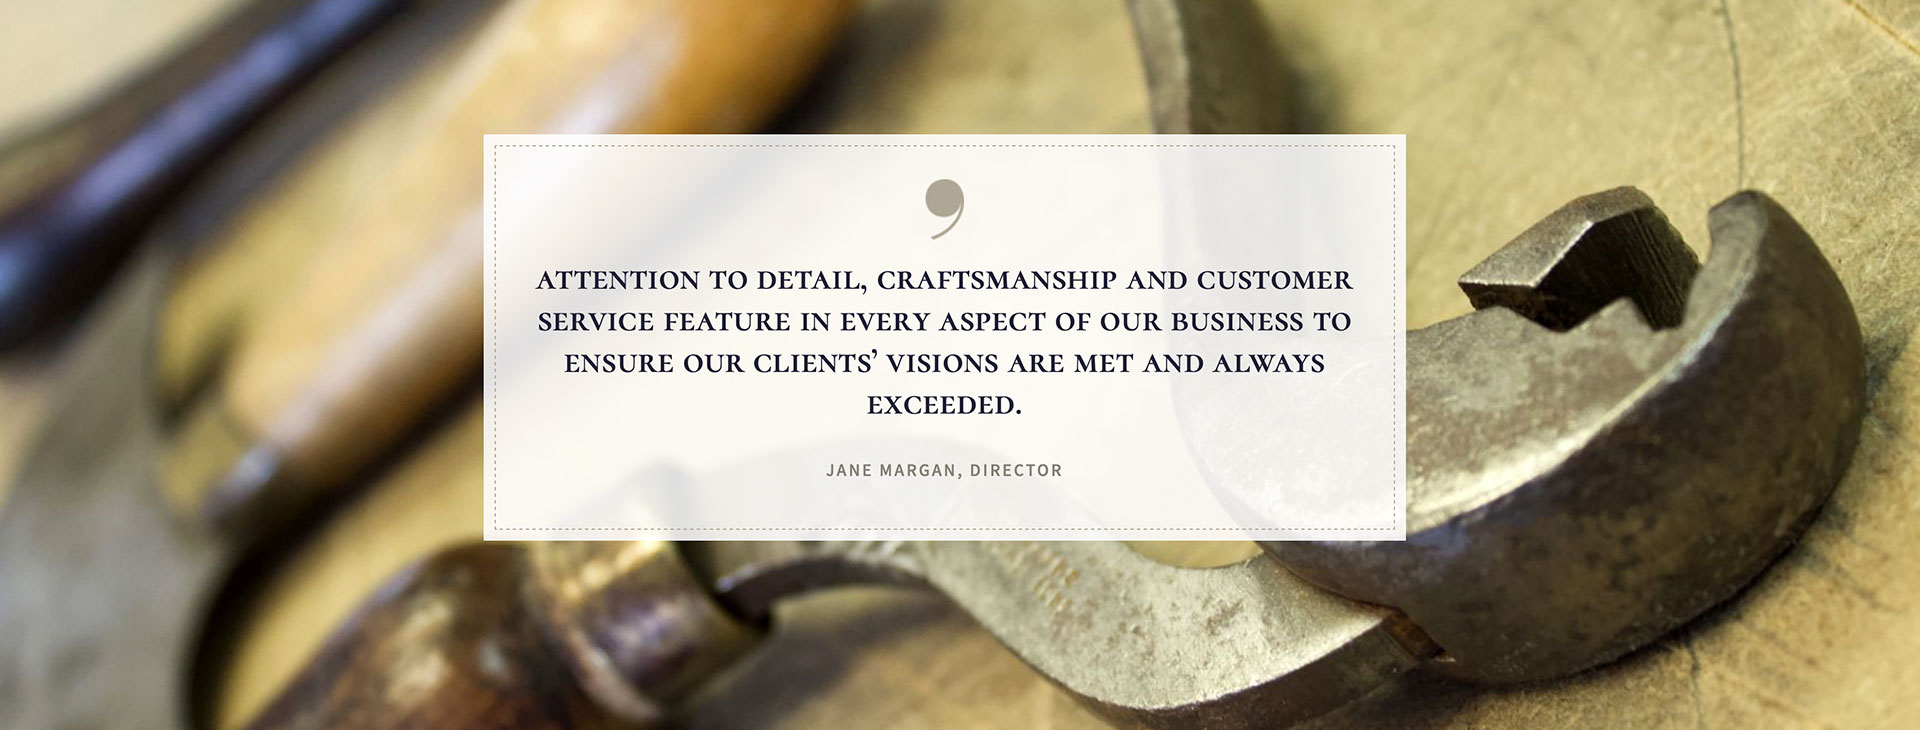 Leatherwork and craftsmanship were the basis of the brief for this web designer project.